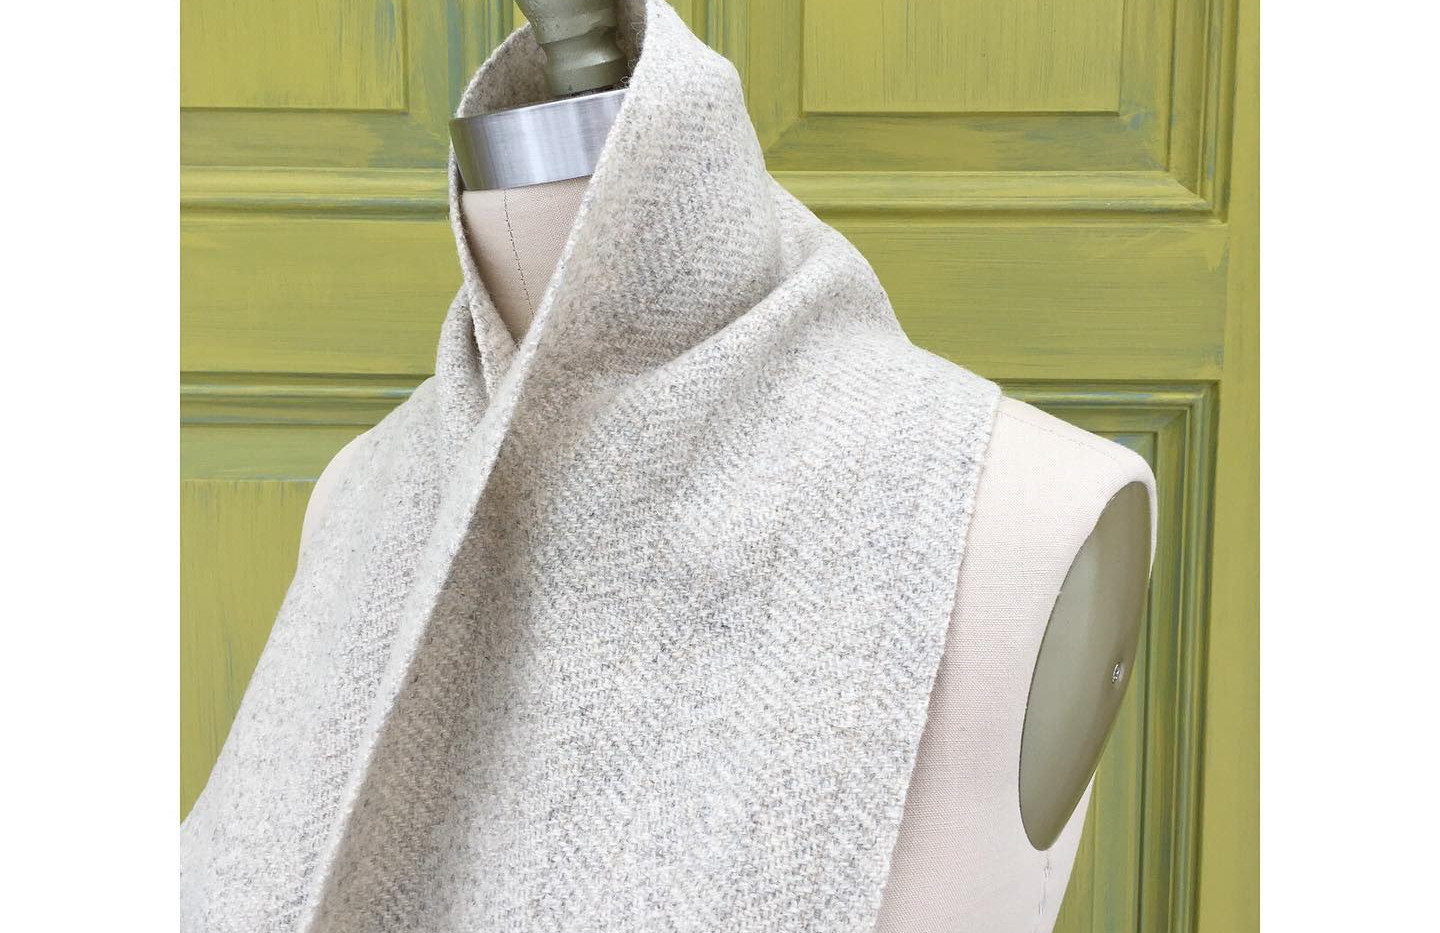 One Solid Color, White Sheep's Wool Warp, Cream